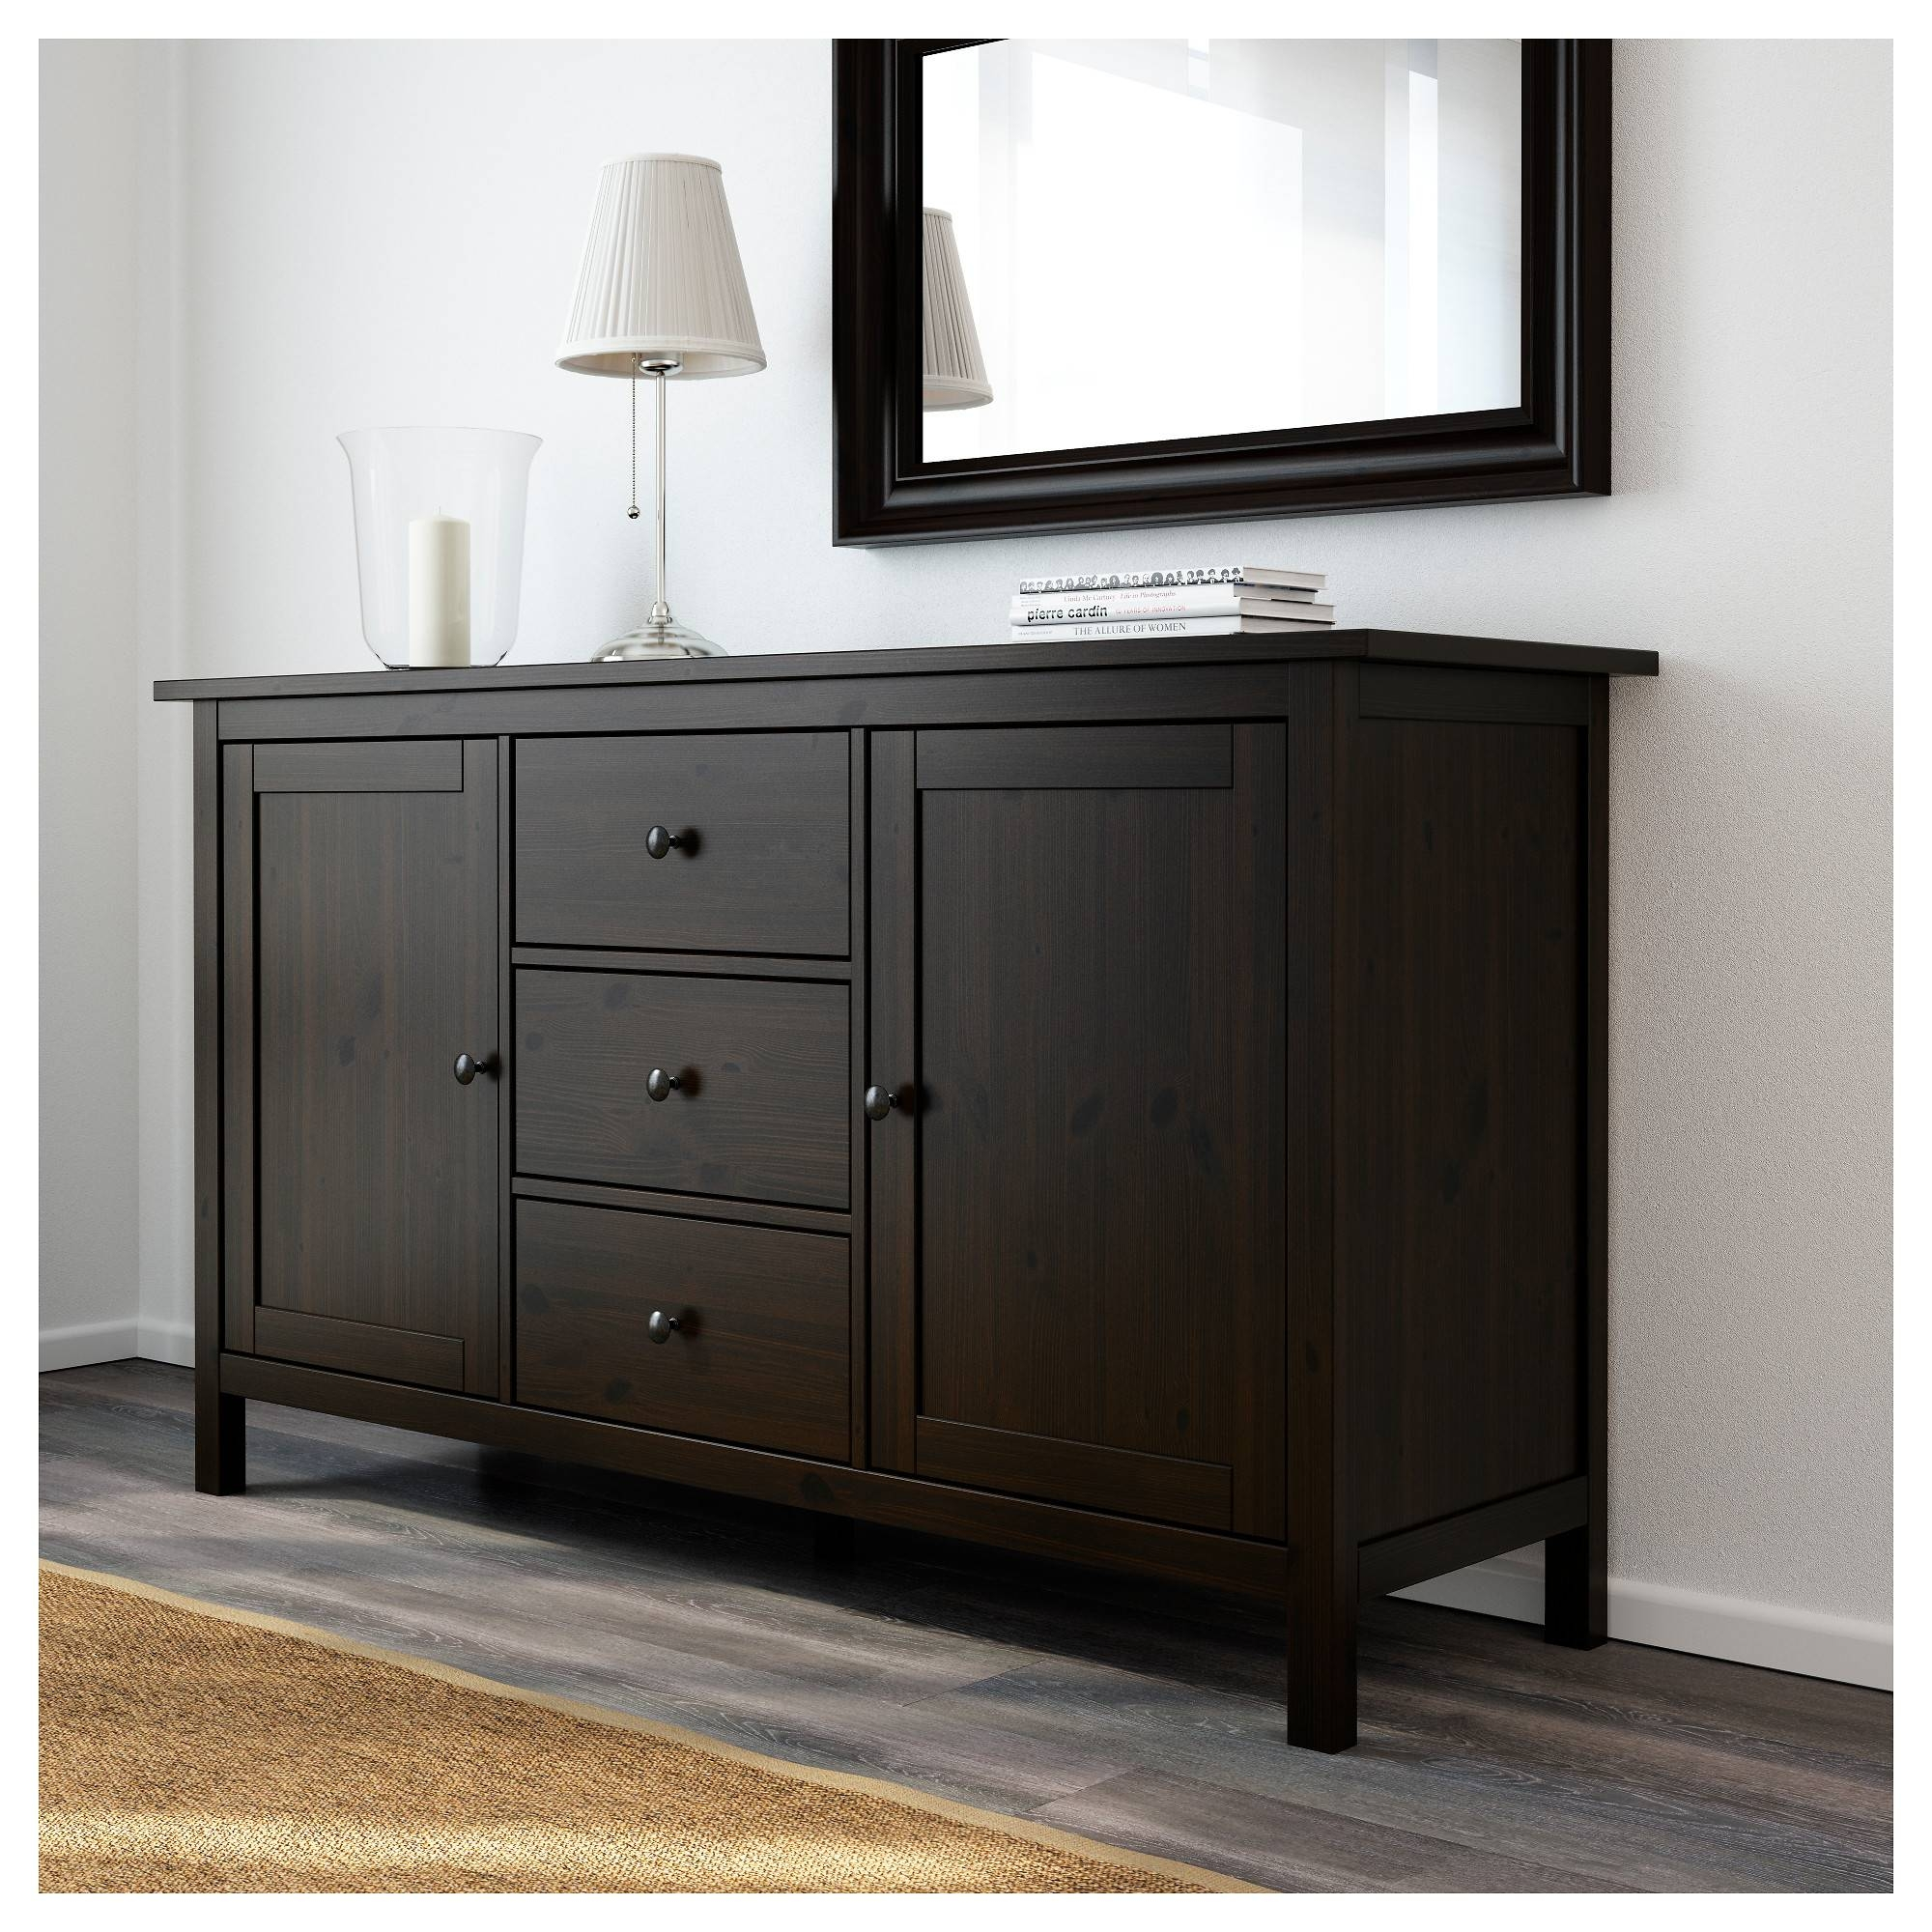 Hemnes Sideboard – Black Brown – Ikea With Regard To Best And Newest Black Sideboard Cabinets (#6 of 15)